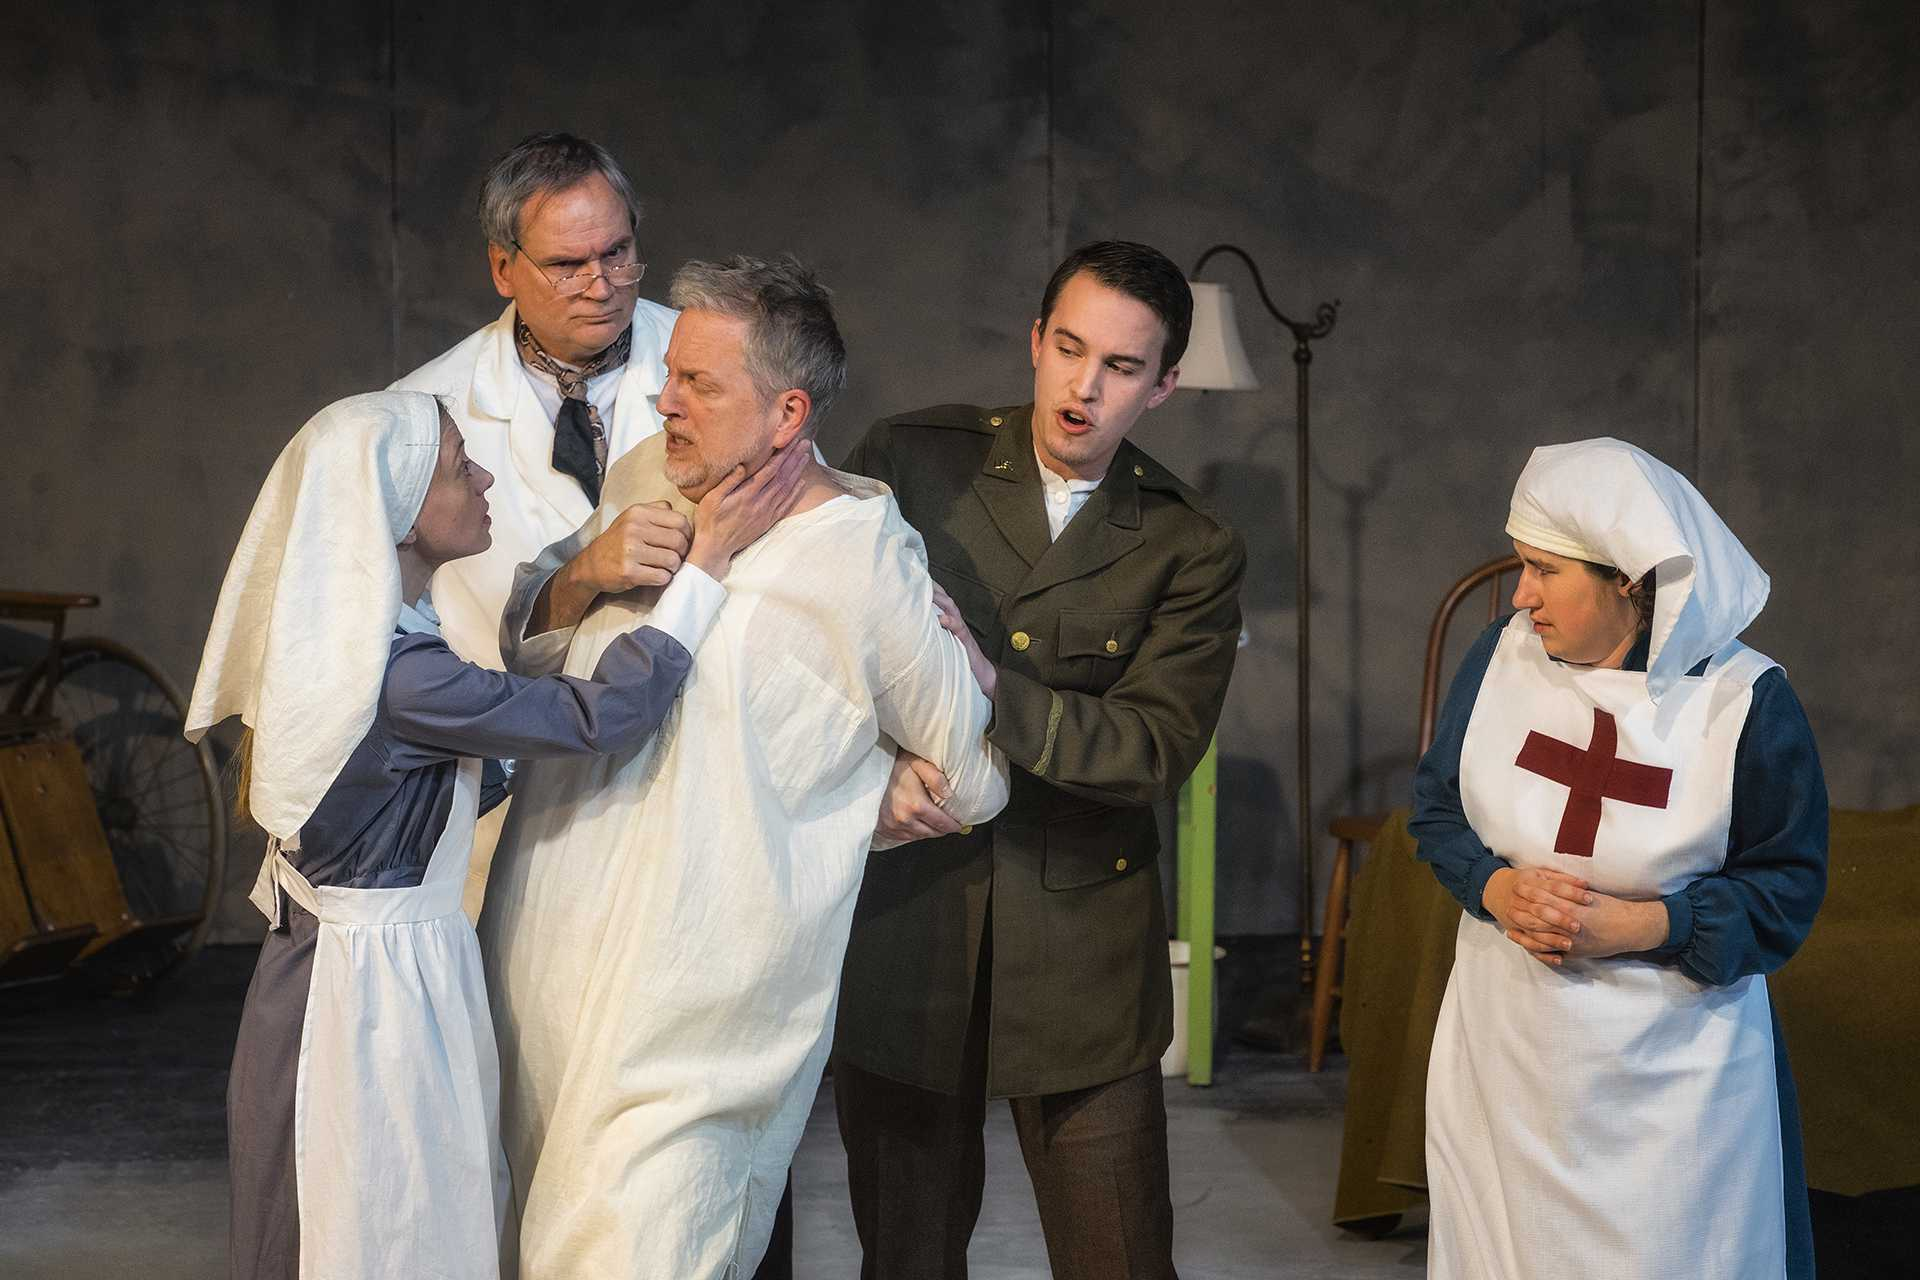 Actors, as medical professionals, help calm a shell-shocked patient during a dress rehearsal for the play Shell Shocked on Wednesday, Dec. 13, 2017. The performance centers on a doctor's search to understand and improve conditions on the Western Front during World War 1. (James Year/The Daily Iowan)